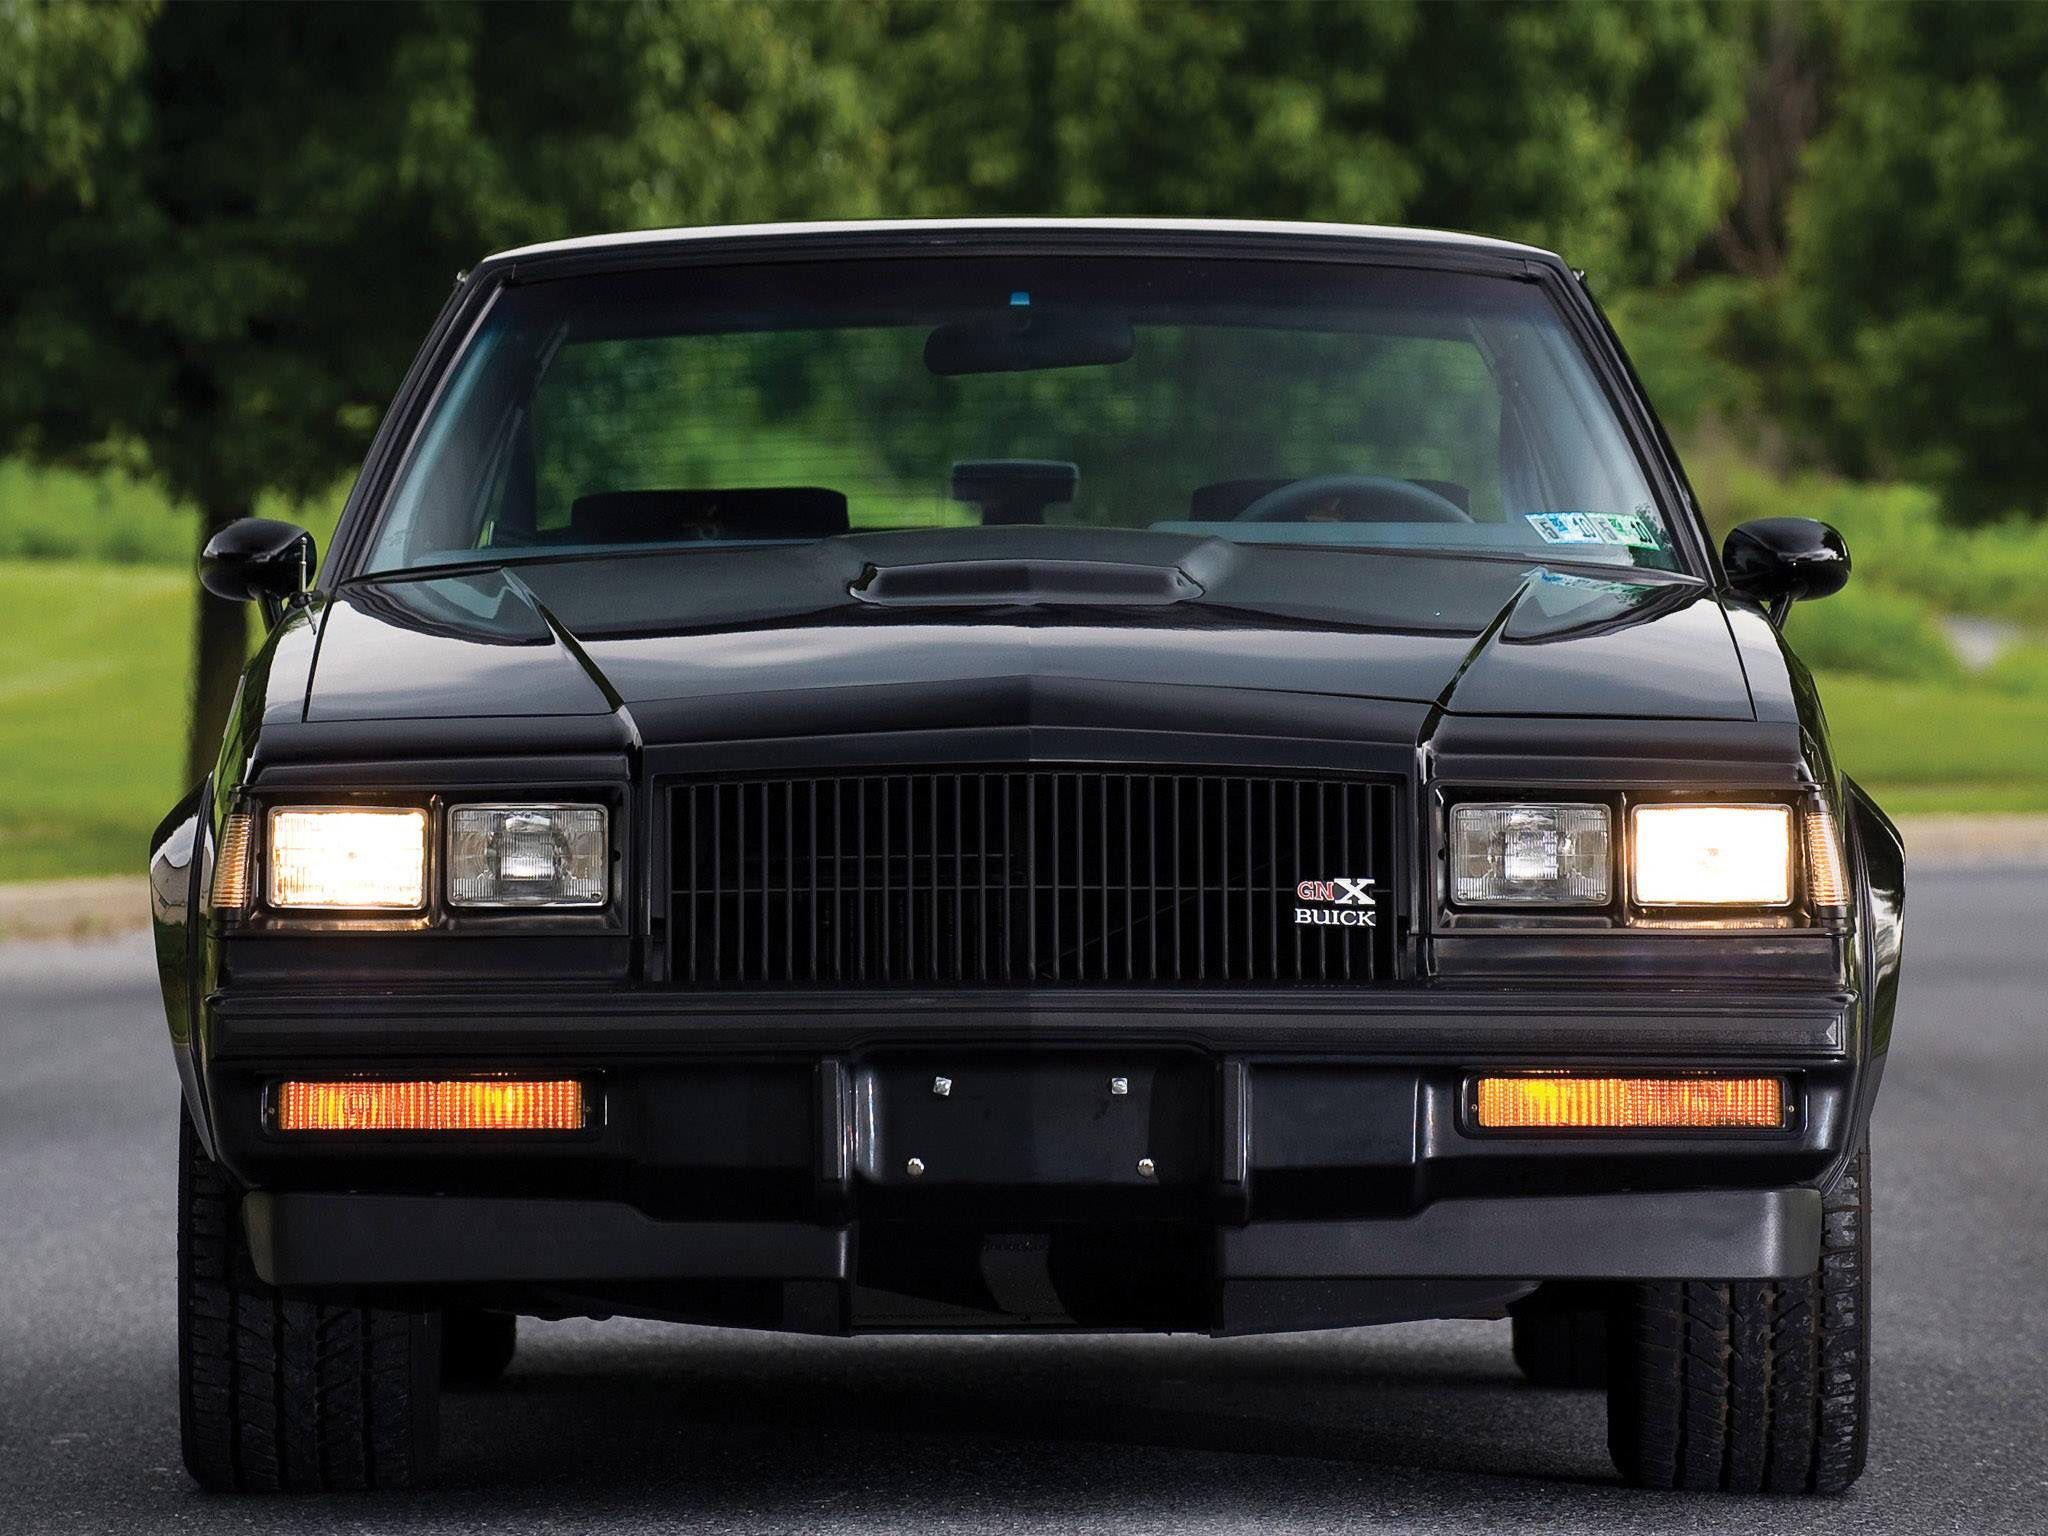 1987 buick grand national no longer the doctor s car old cars trucks tractors etc pinterest 1987 buick grand national buick grand national